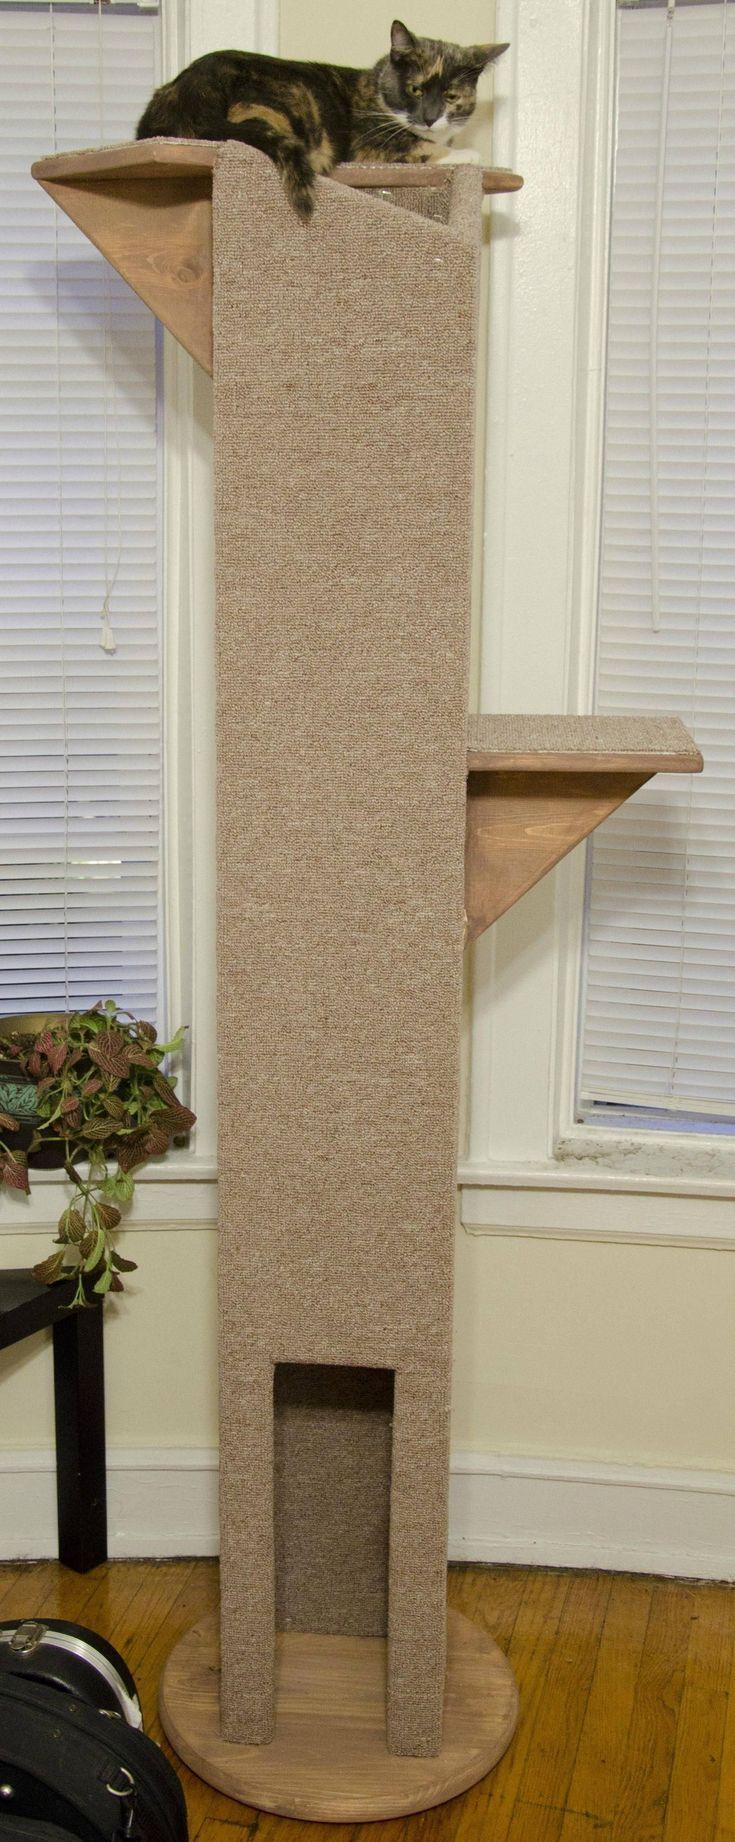 Free DIY Woodworking Plans to Build a Cat Tree: Free Cat Tower Plan at Imgur